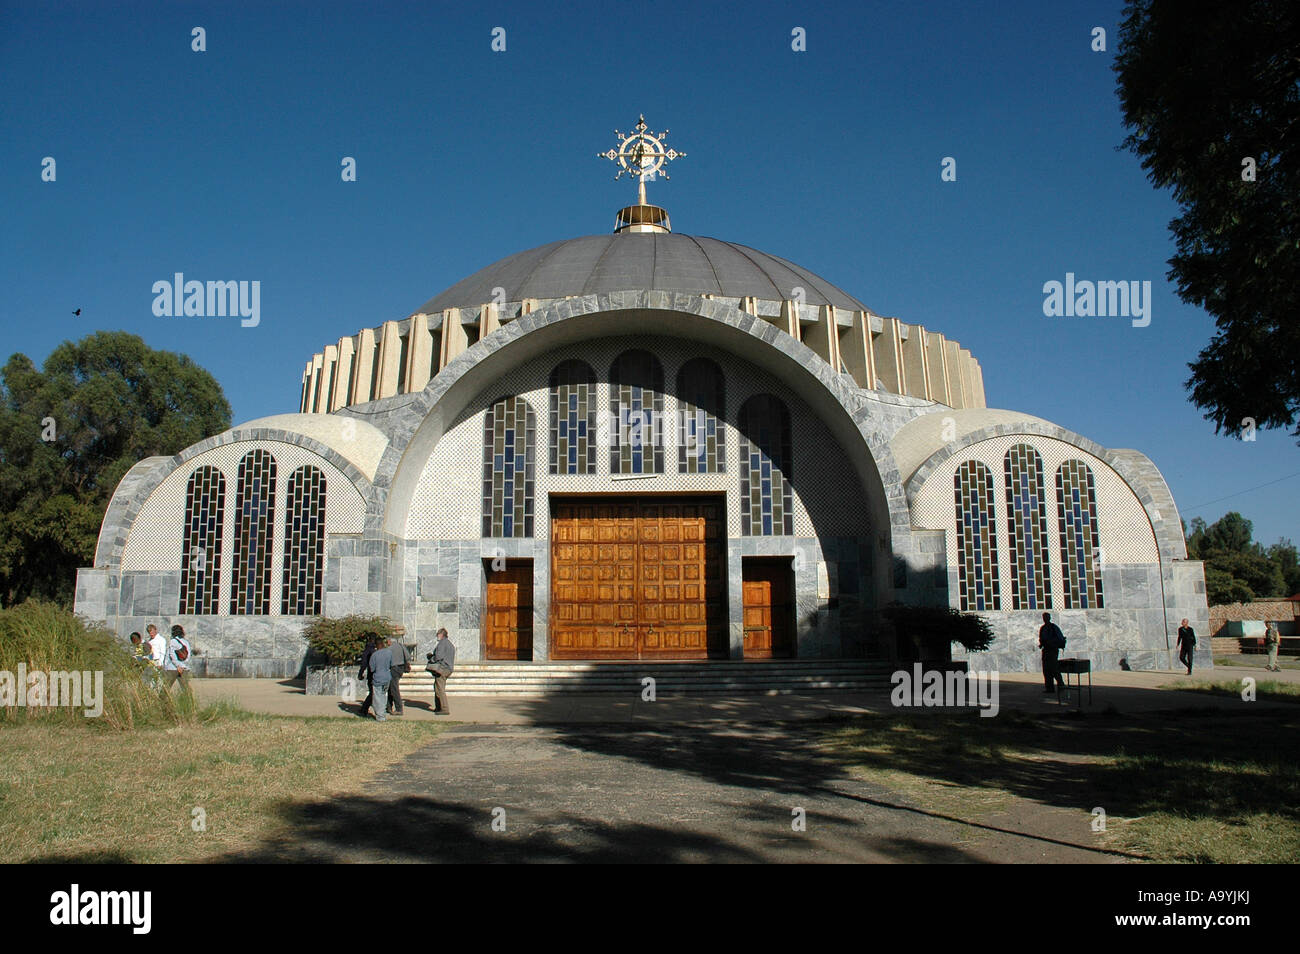 Dome shaped church New Cathedral Aksum Ethiopia - Stock Image